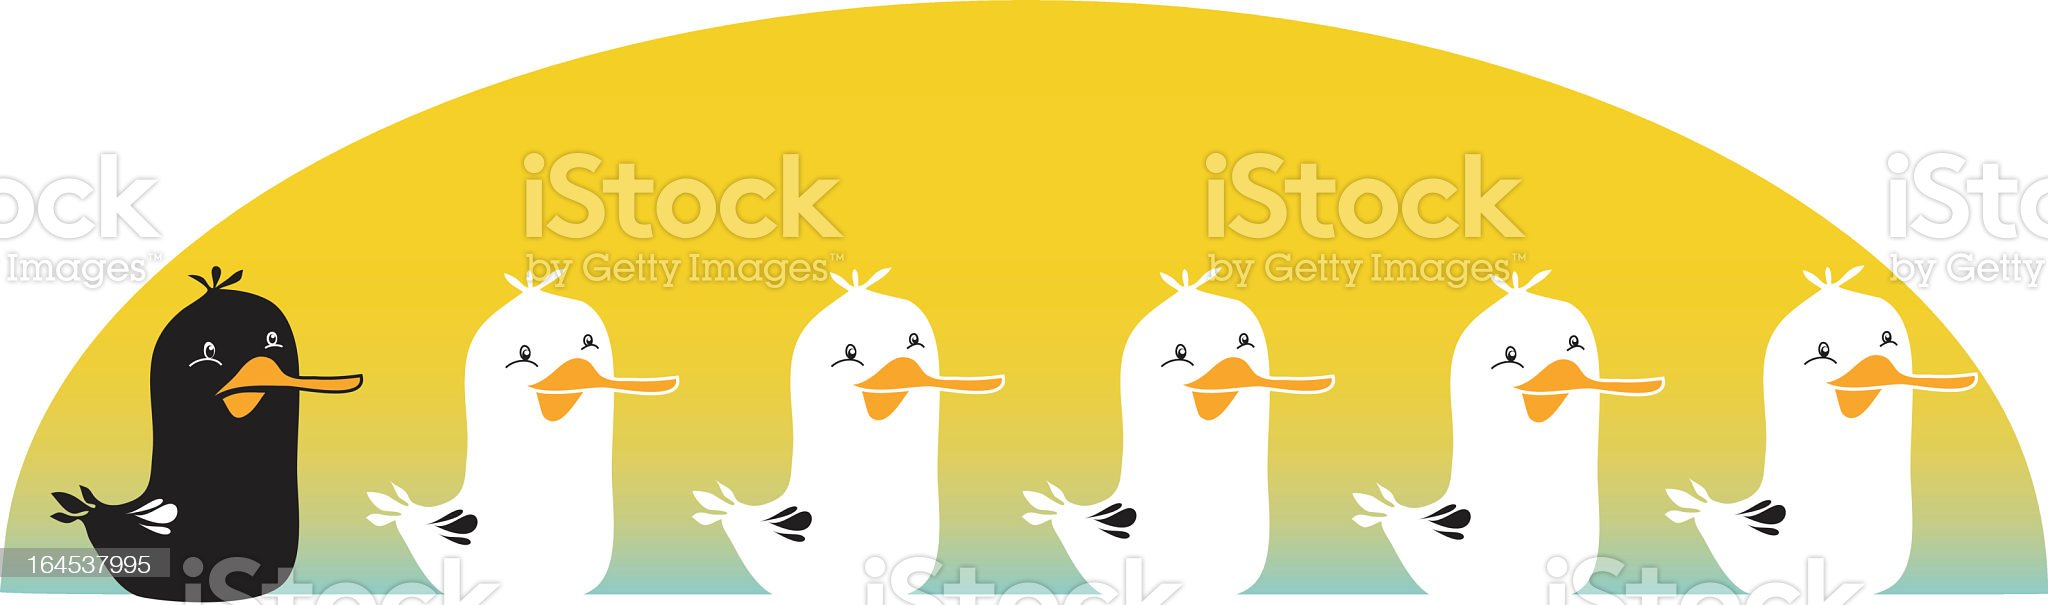 The Ugly Duckling royalty-free stock vector art